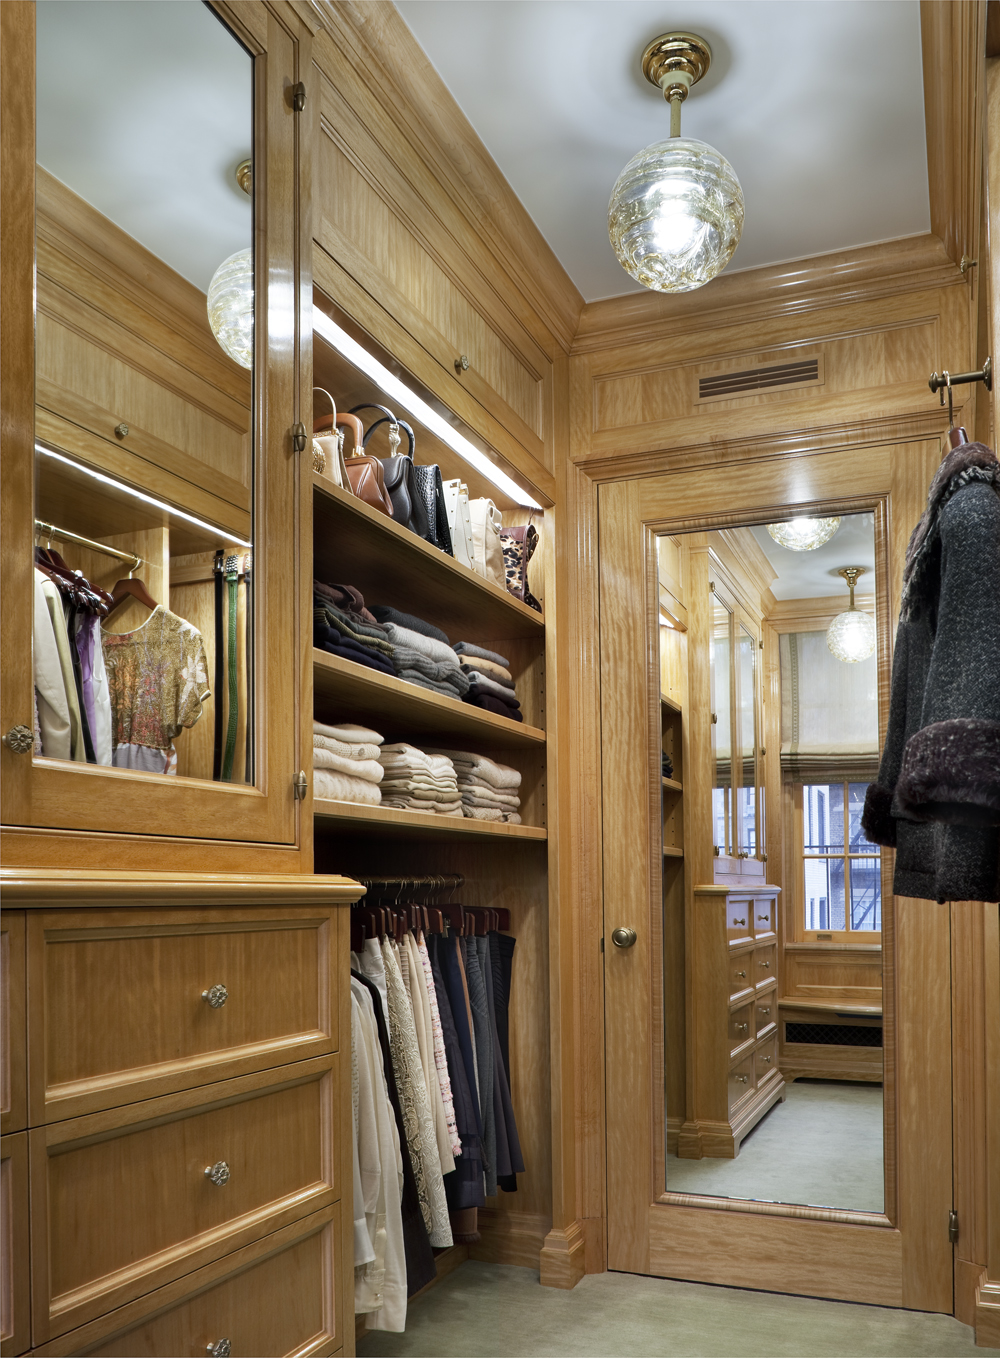 LSI Web Fifth Ave Interior Closet 1